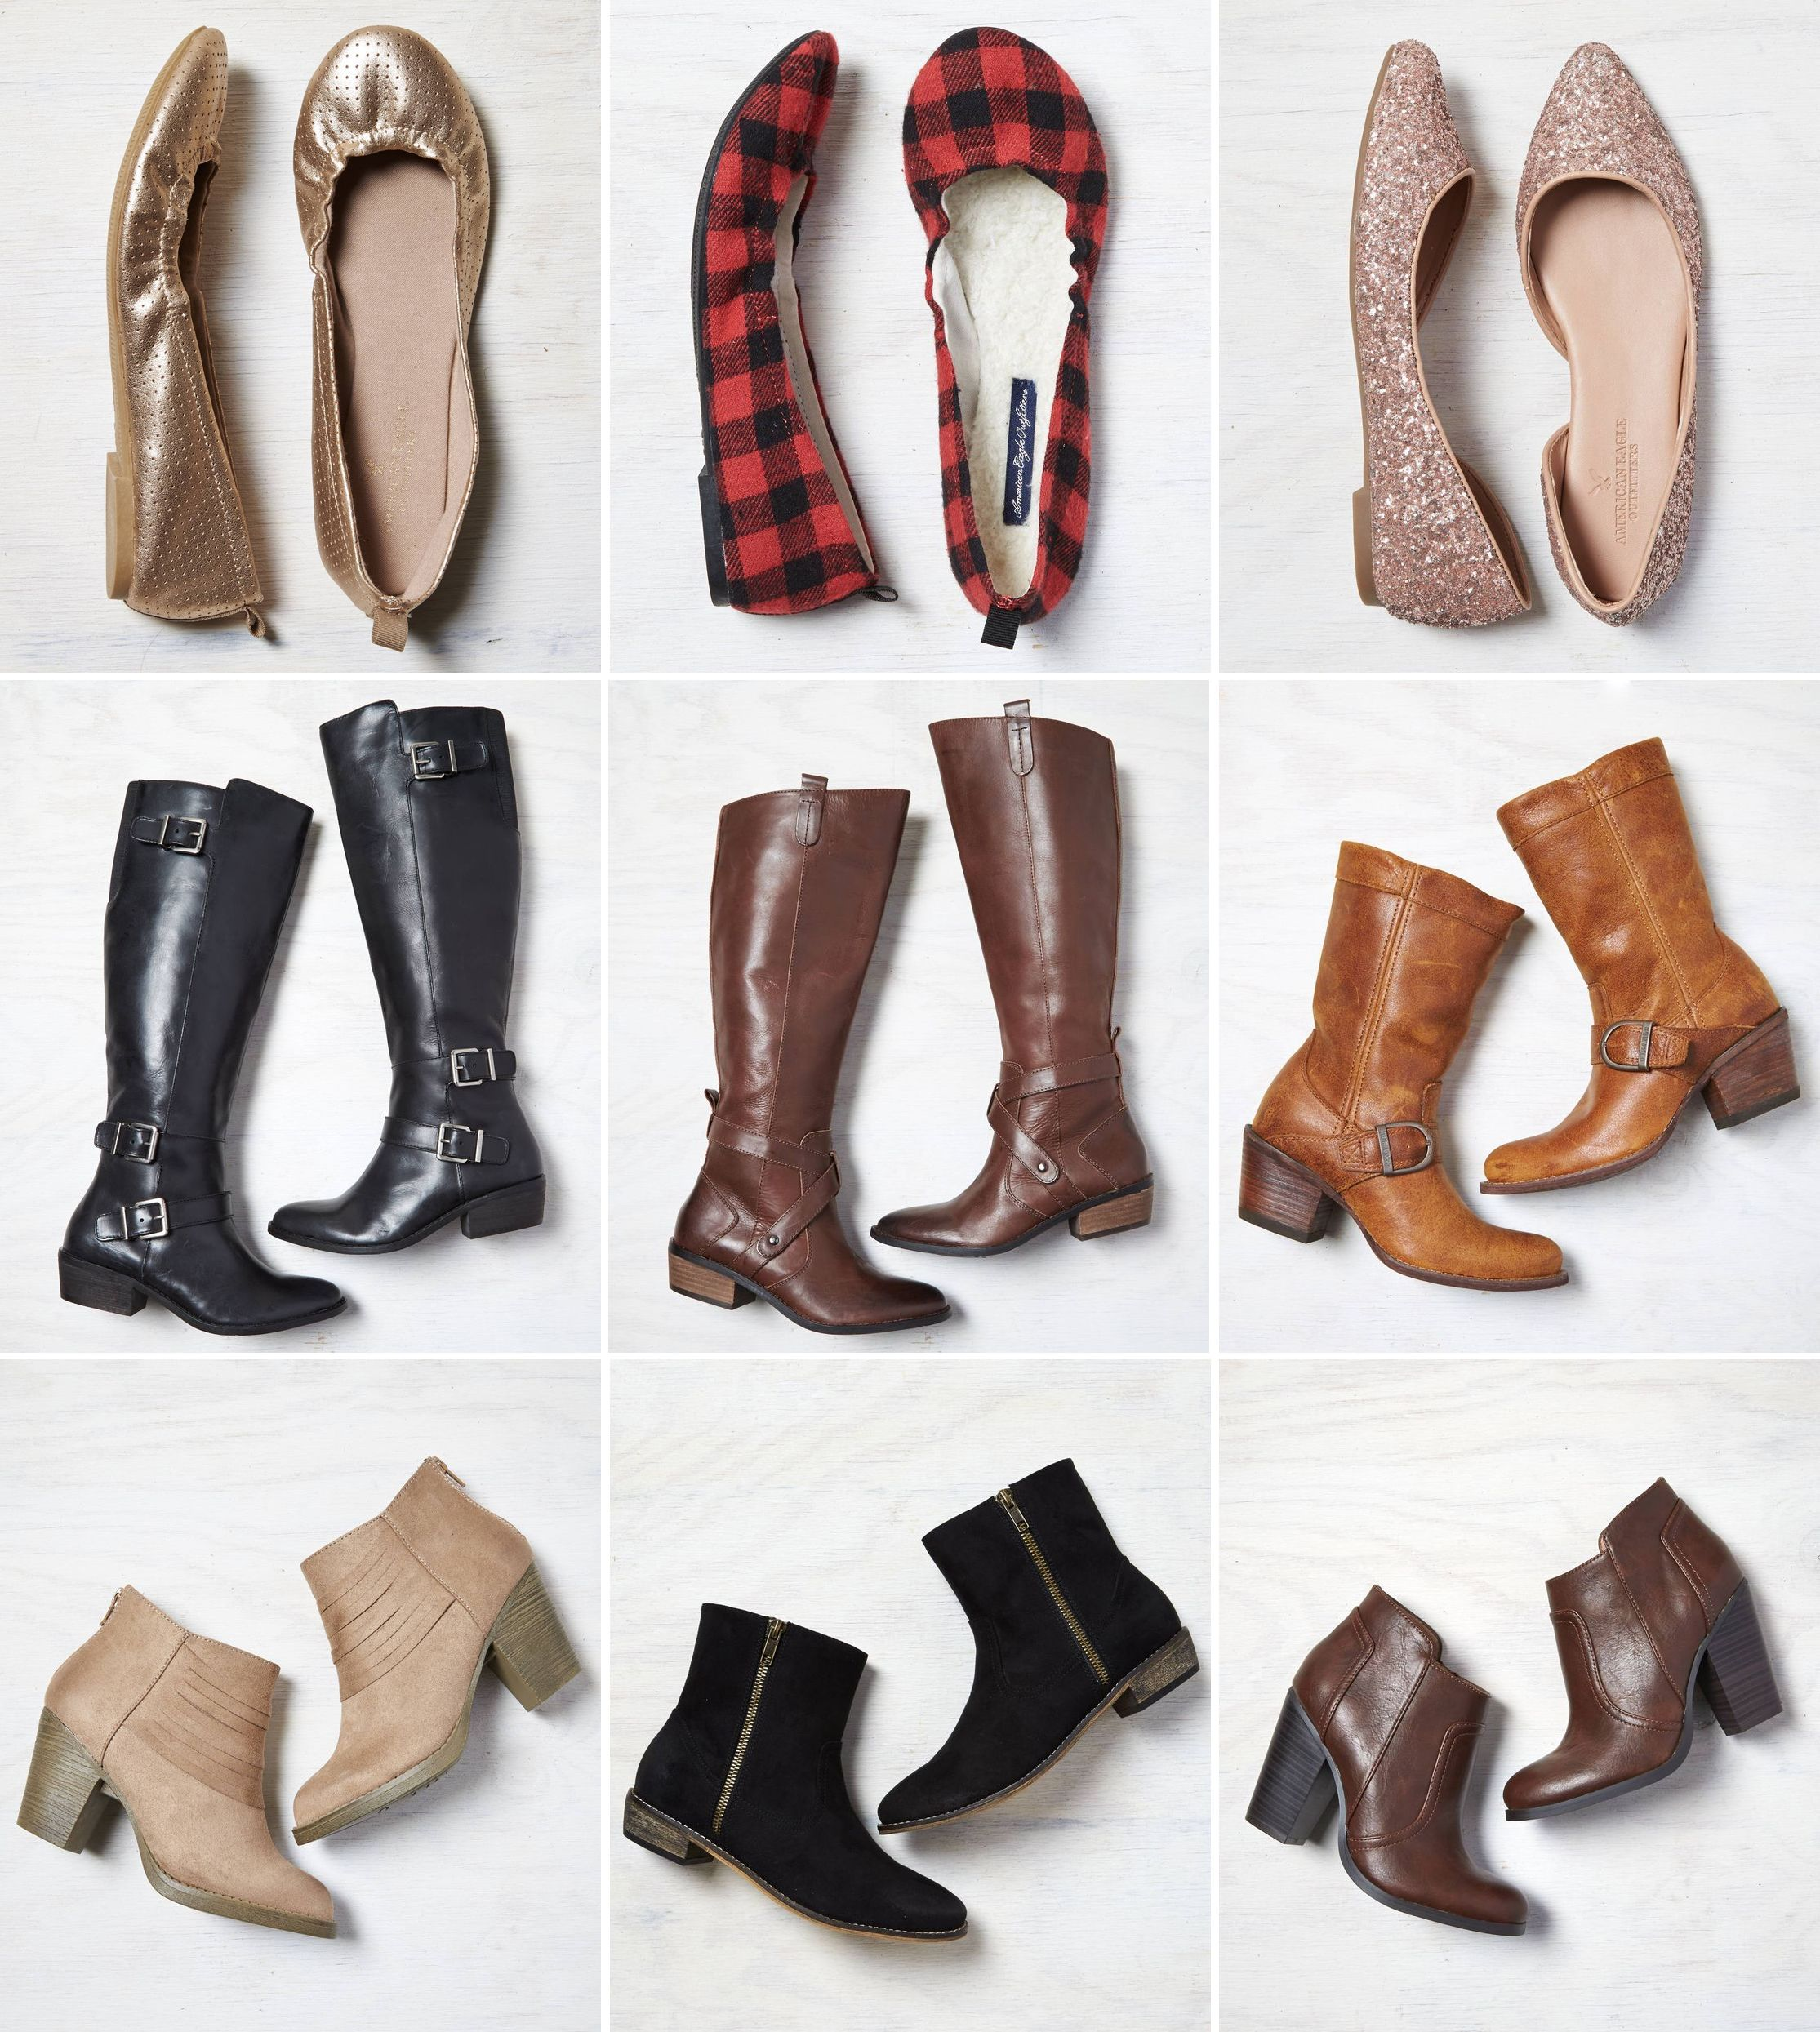 LOVE These Shoes!!! They would all be cute for visiting friends and family around the holidays. #shoes #boots #fashion